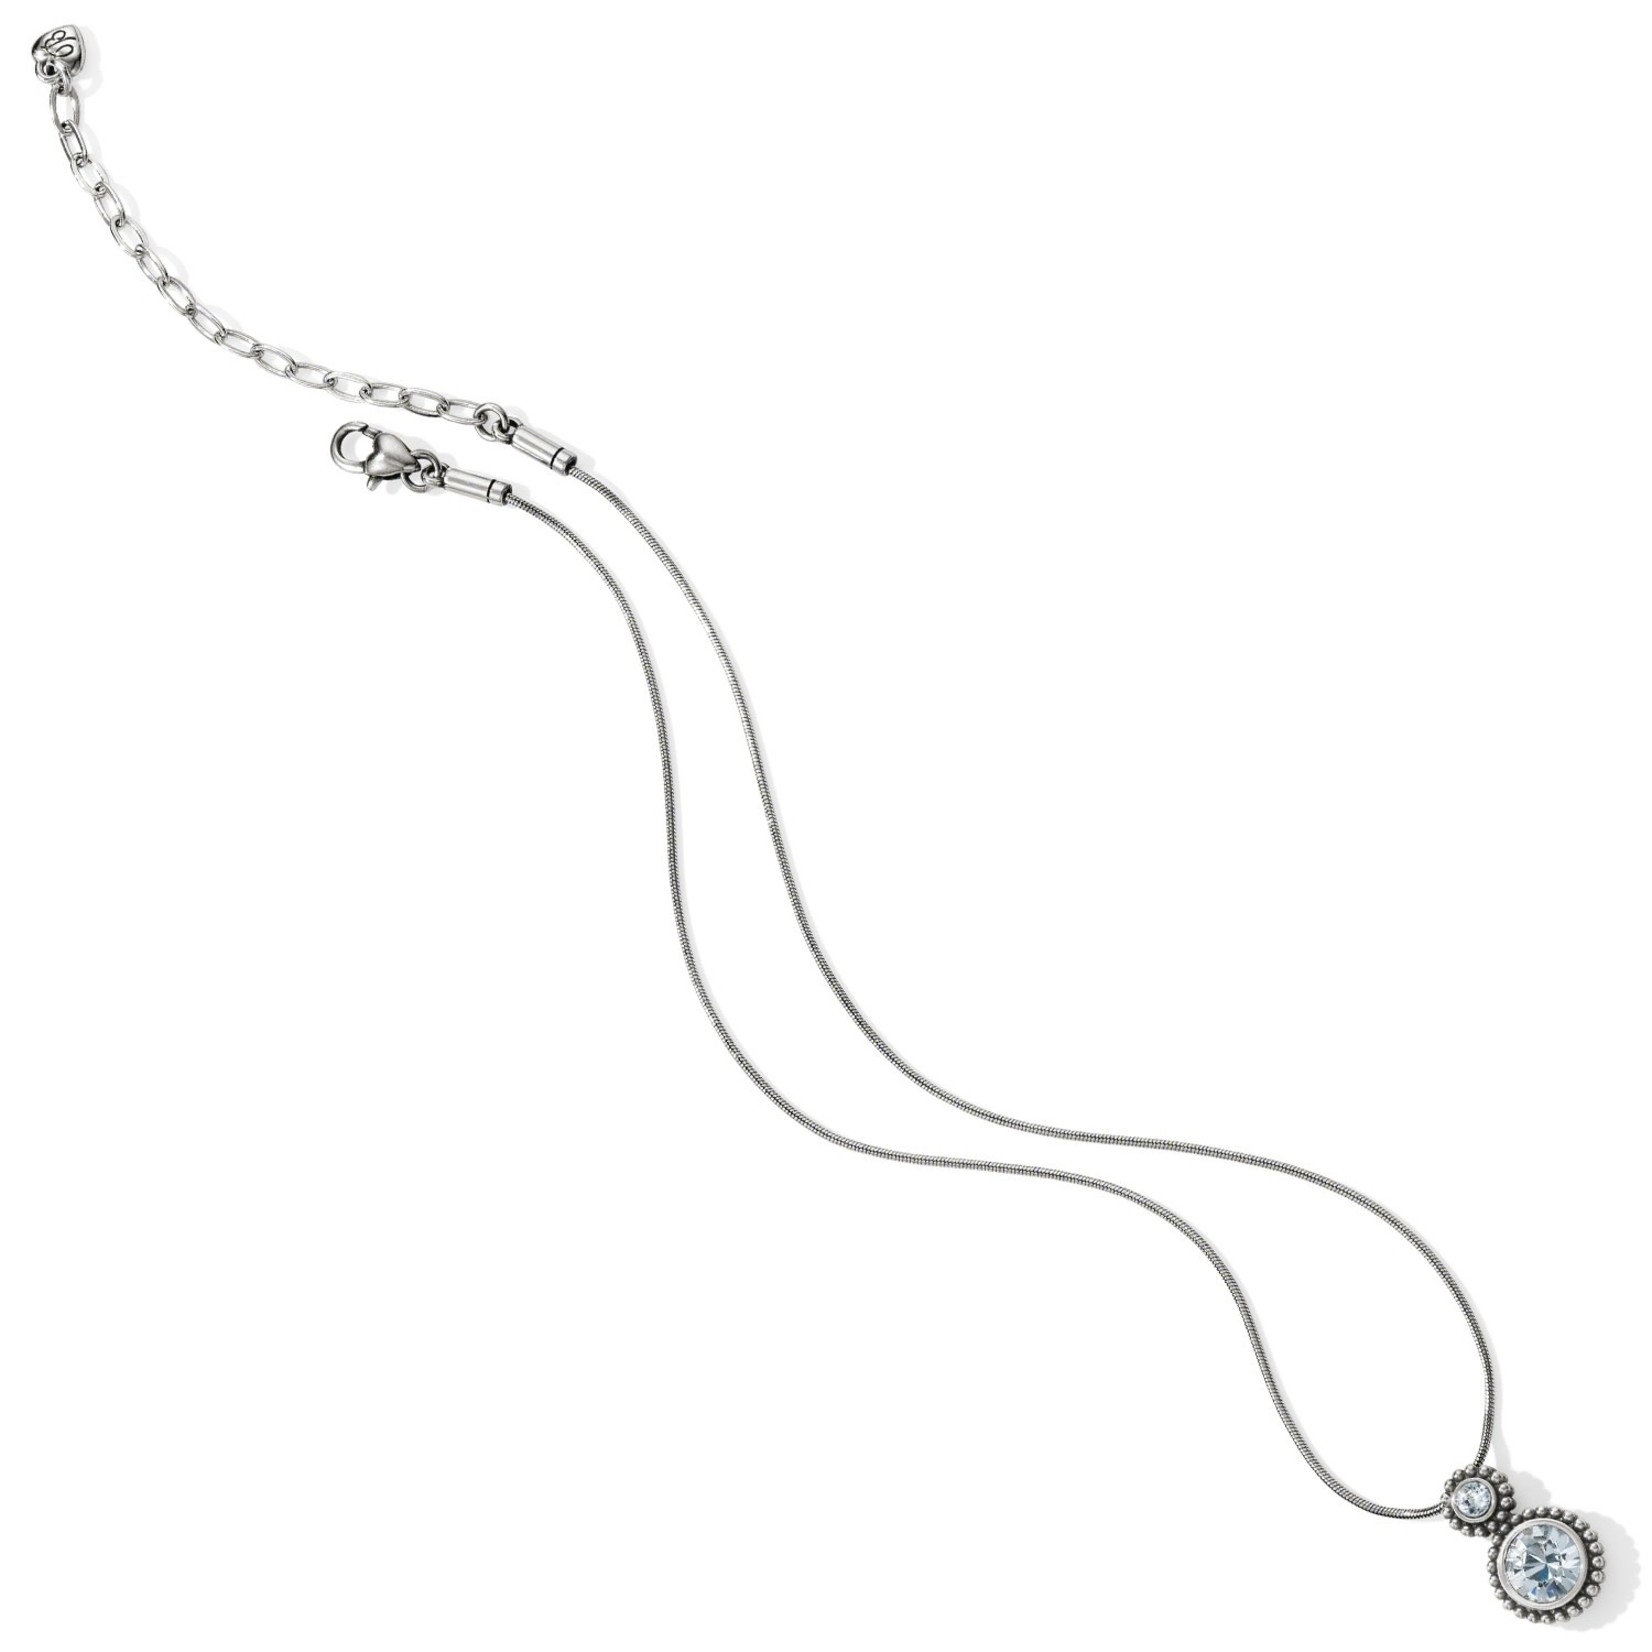 Brighton JL8931 Twinkle Duo Necklace